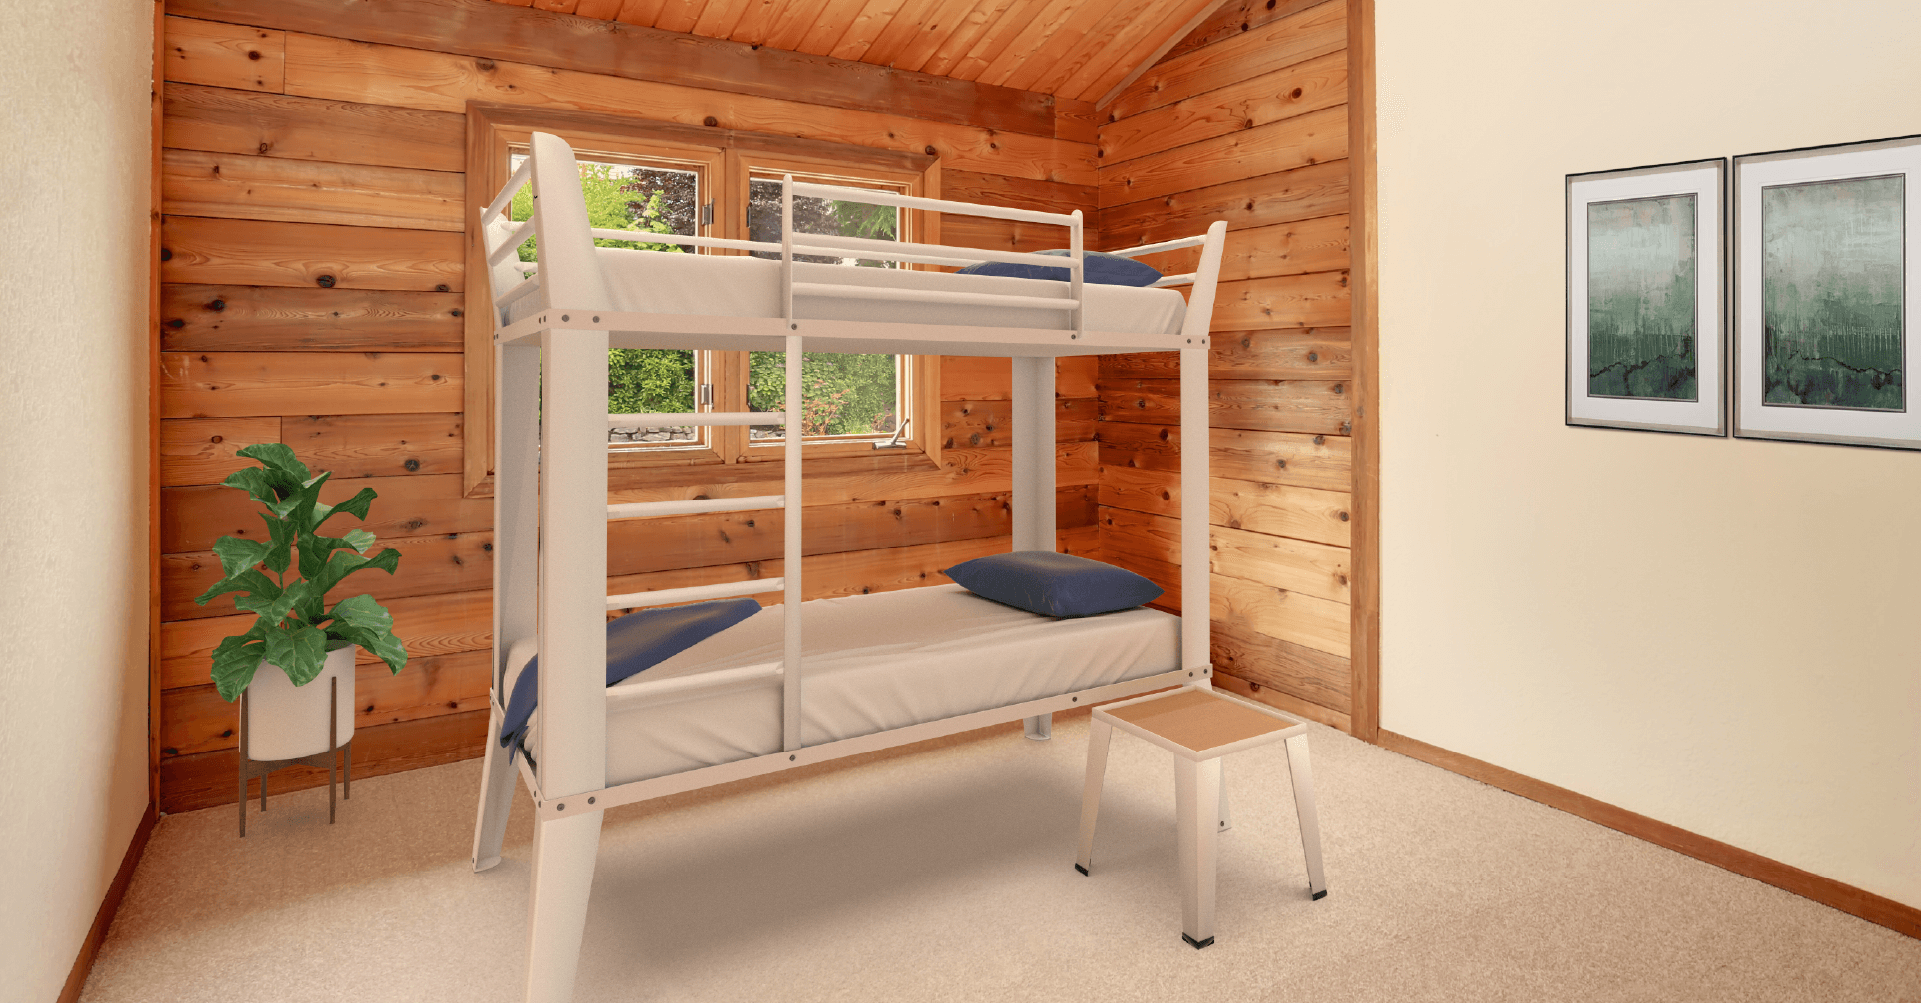 Product shot of central city beds bunk beds in room